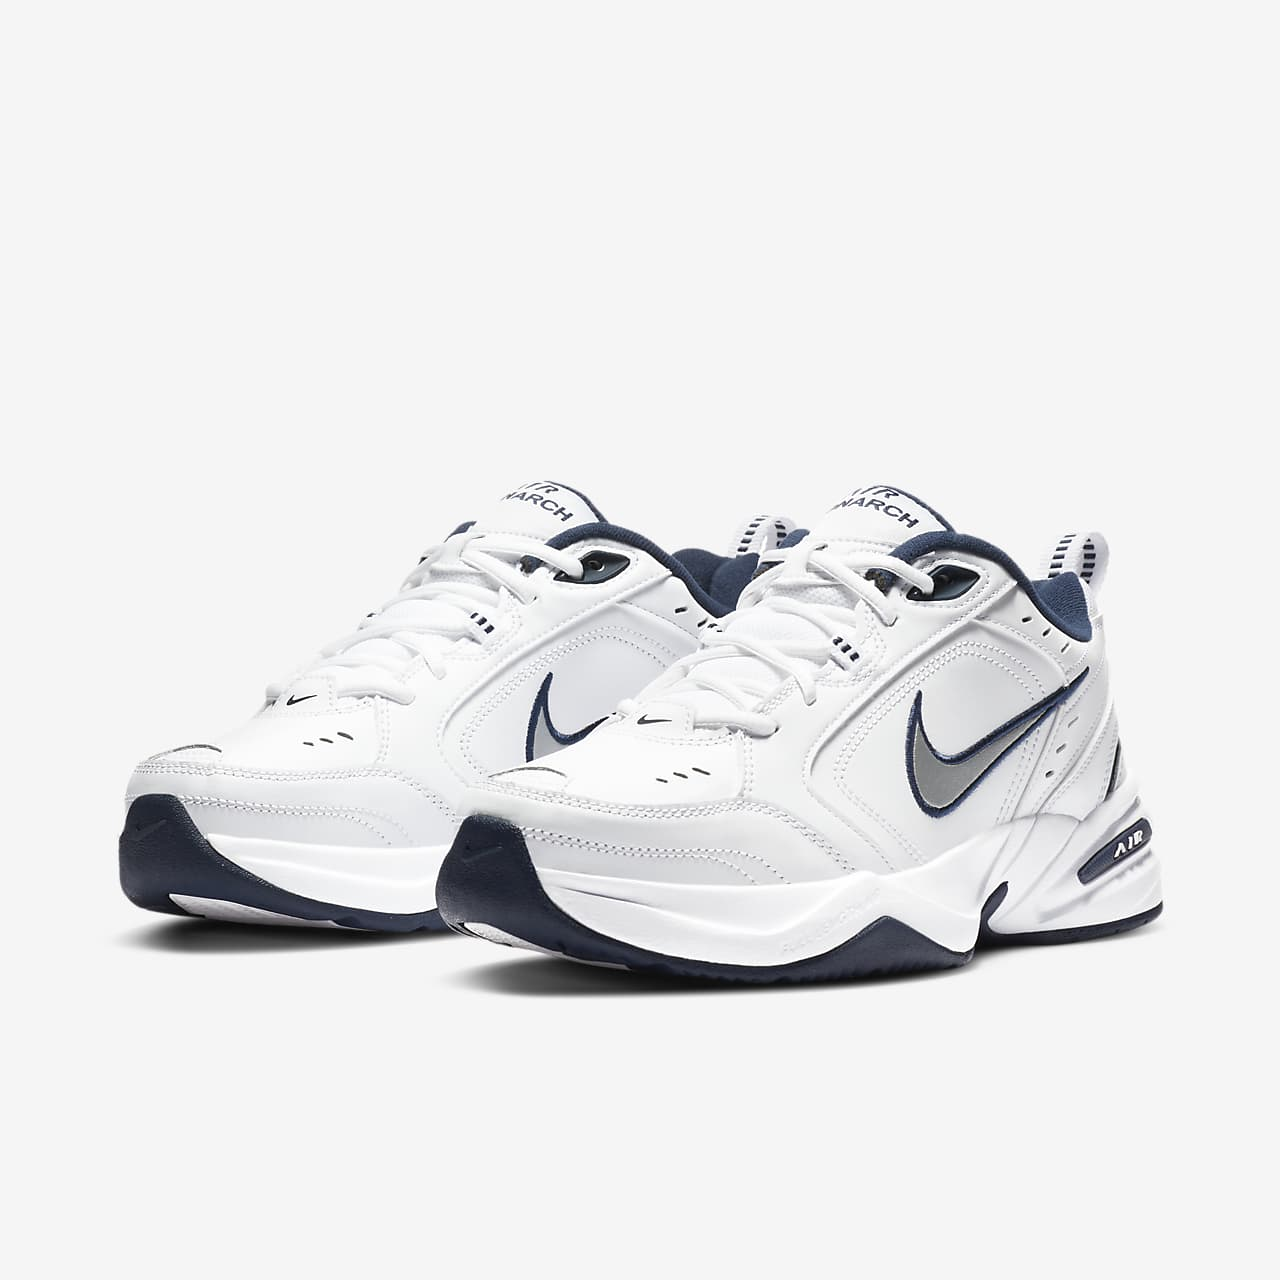 d2eb21387d3 Nike Air Monarch IV Lifestyle/Gym Shoe. Nike.com SE